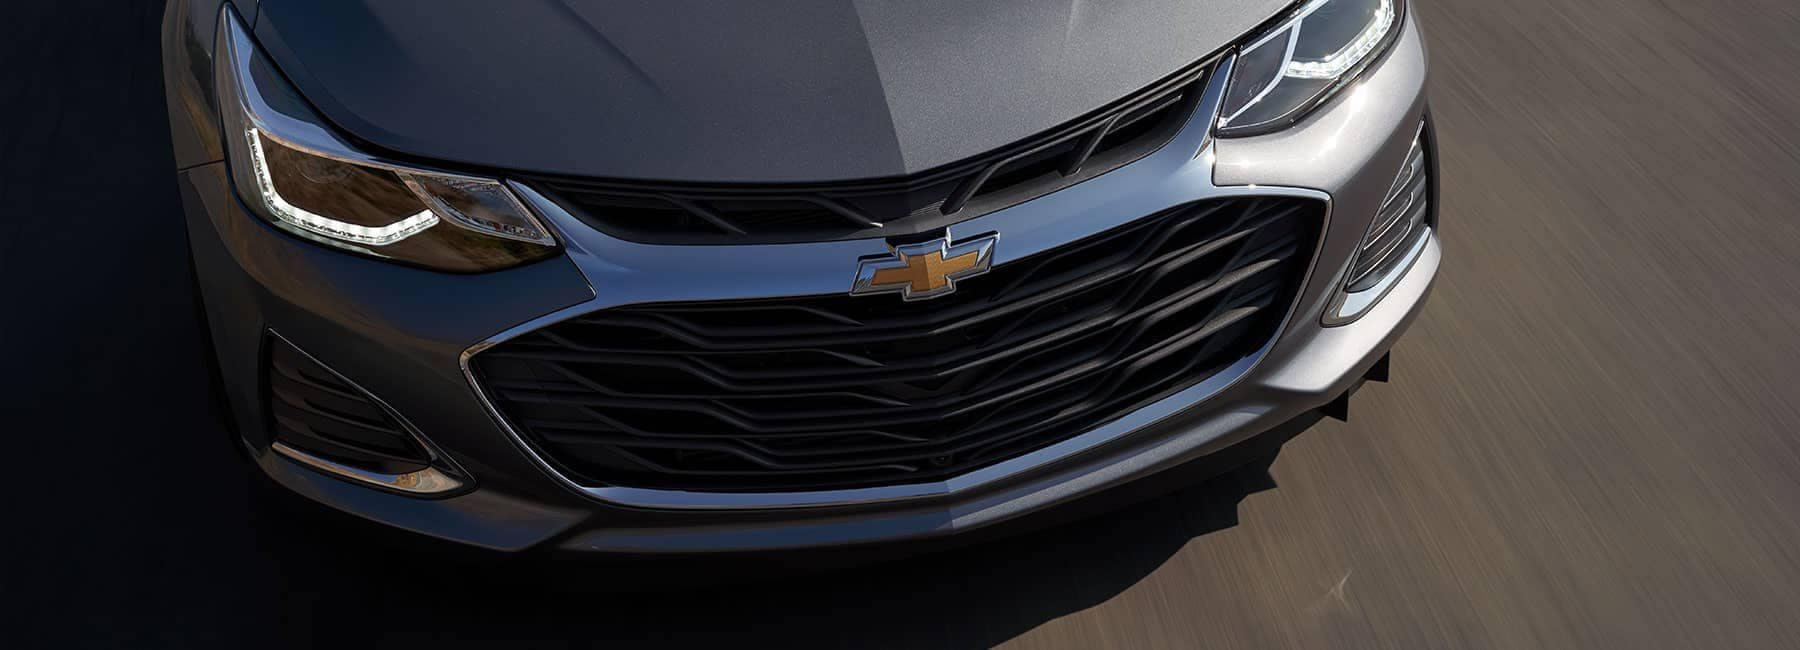 Gray 2019 Chevrolet Cruz Exterior Nose